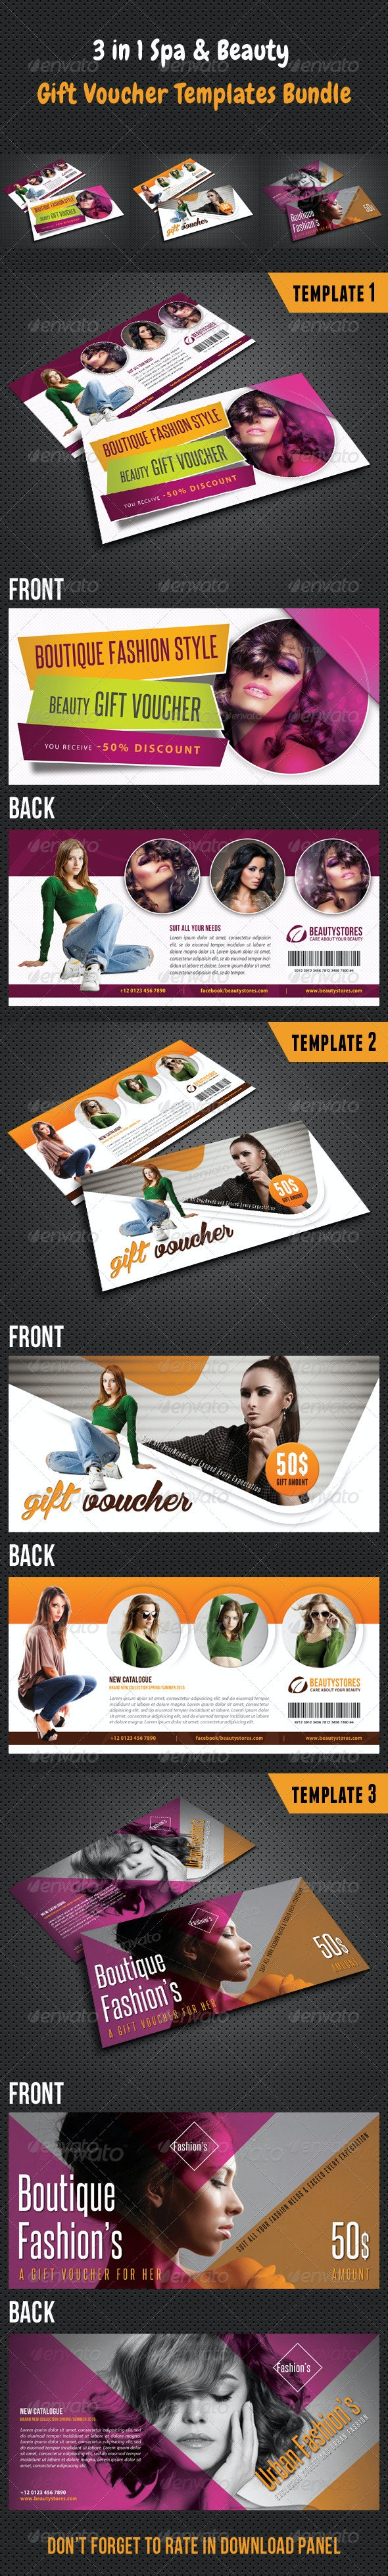 3 in 1 Beauty and Spa Gift Voucher Bundle 02 - Cards & Invites Print Templates